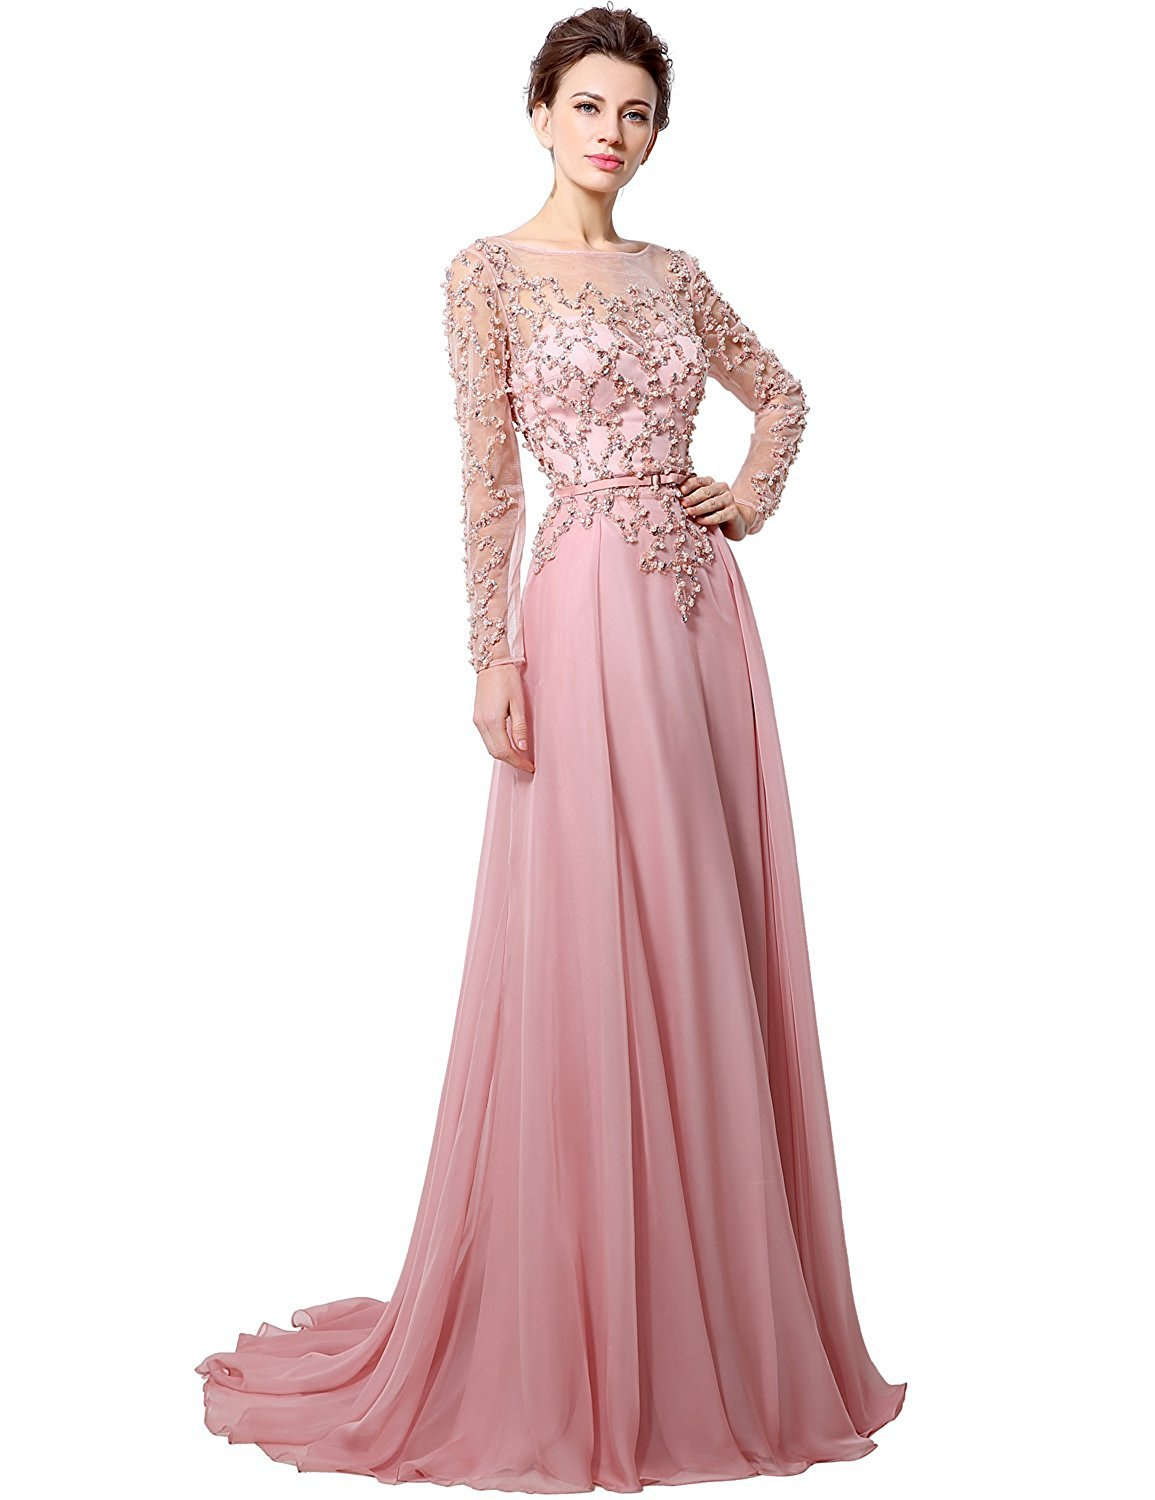 Anmor Chiffon Mother of The Bride Groom Formal Wedding Dresses Long Sleeves Party Evening Gown Pink US8